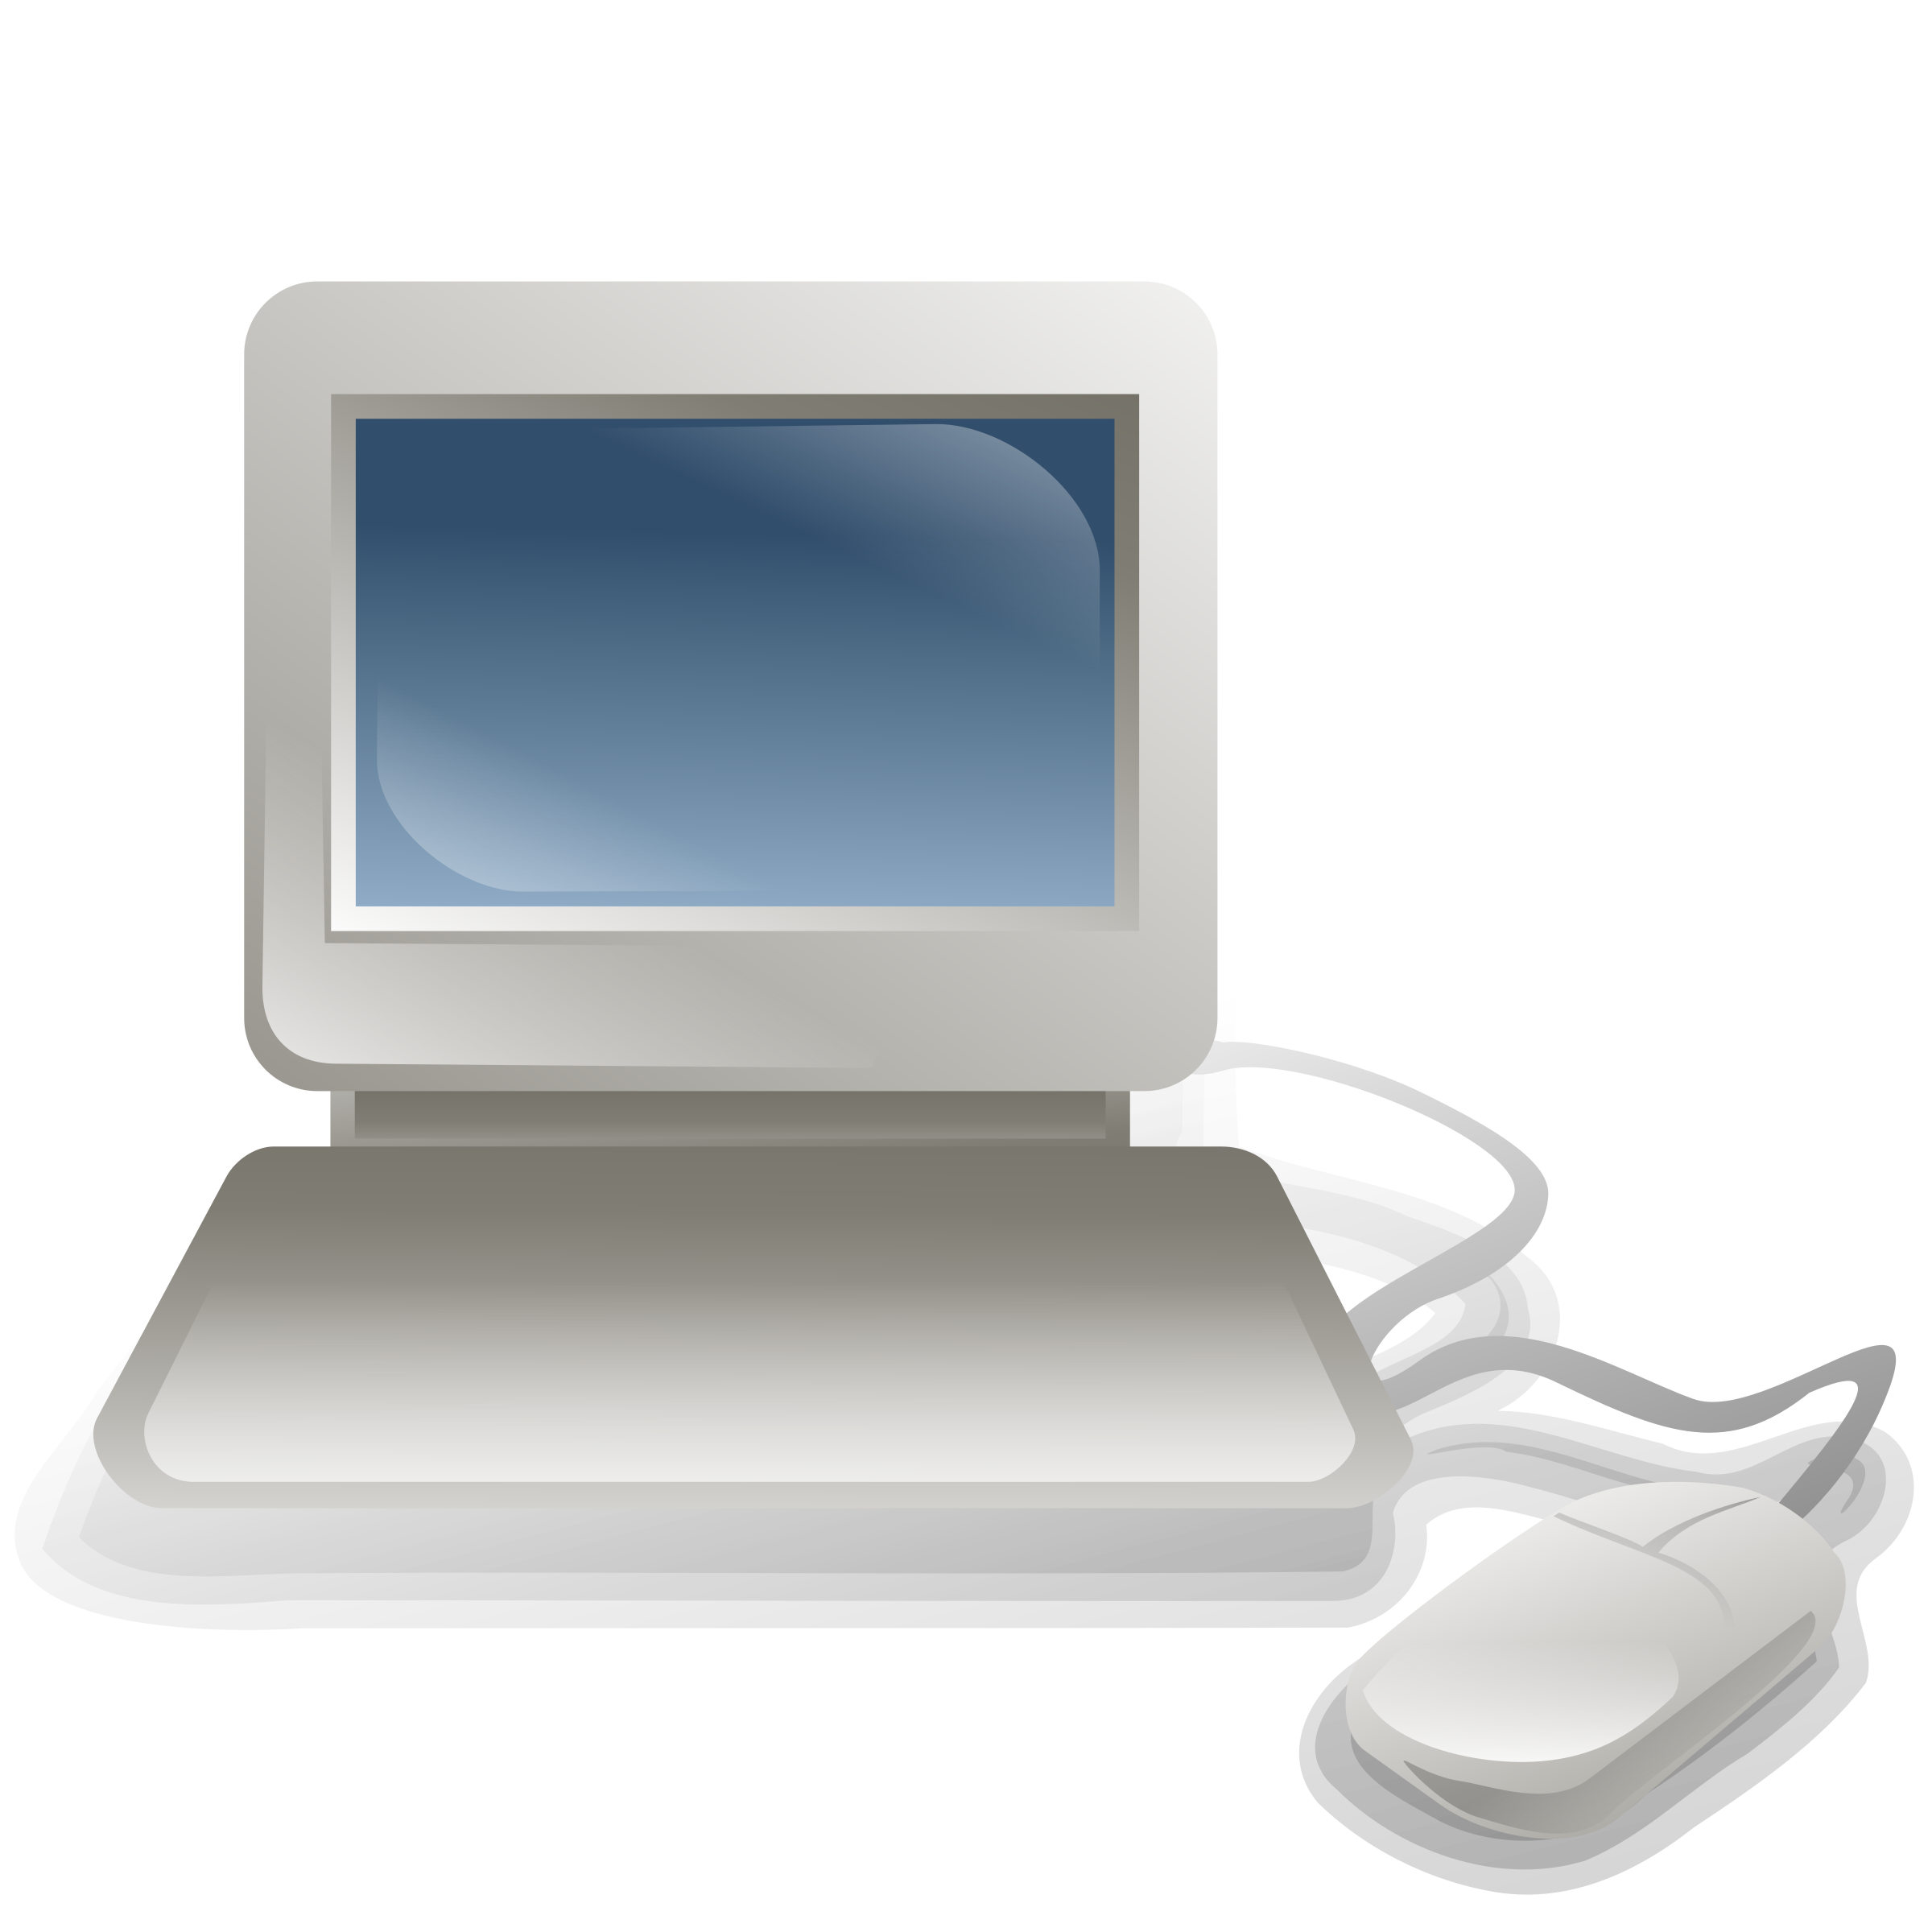 Computer big image png. Electronics clipart electronic media